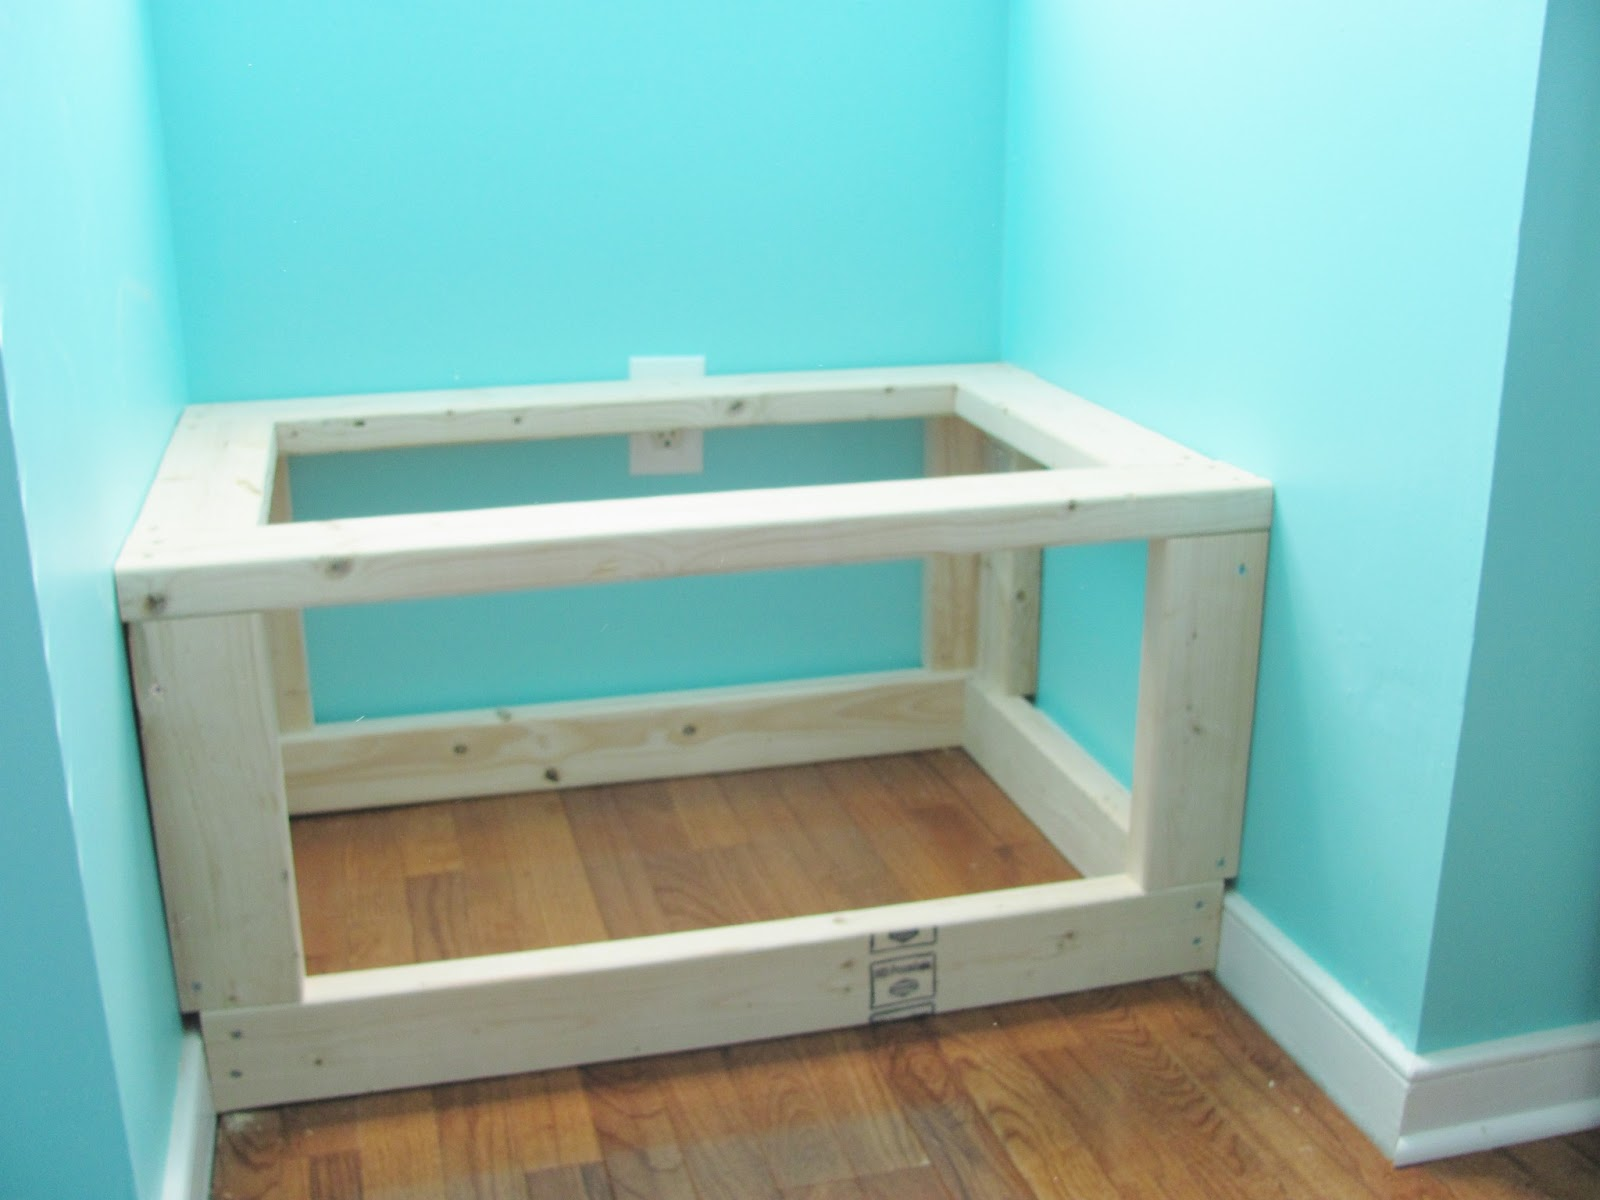 Built In Bench Silver Lining Decor Diy Built In Window Seat And Storage